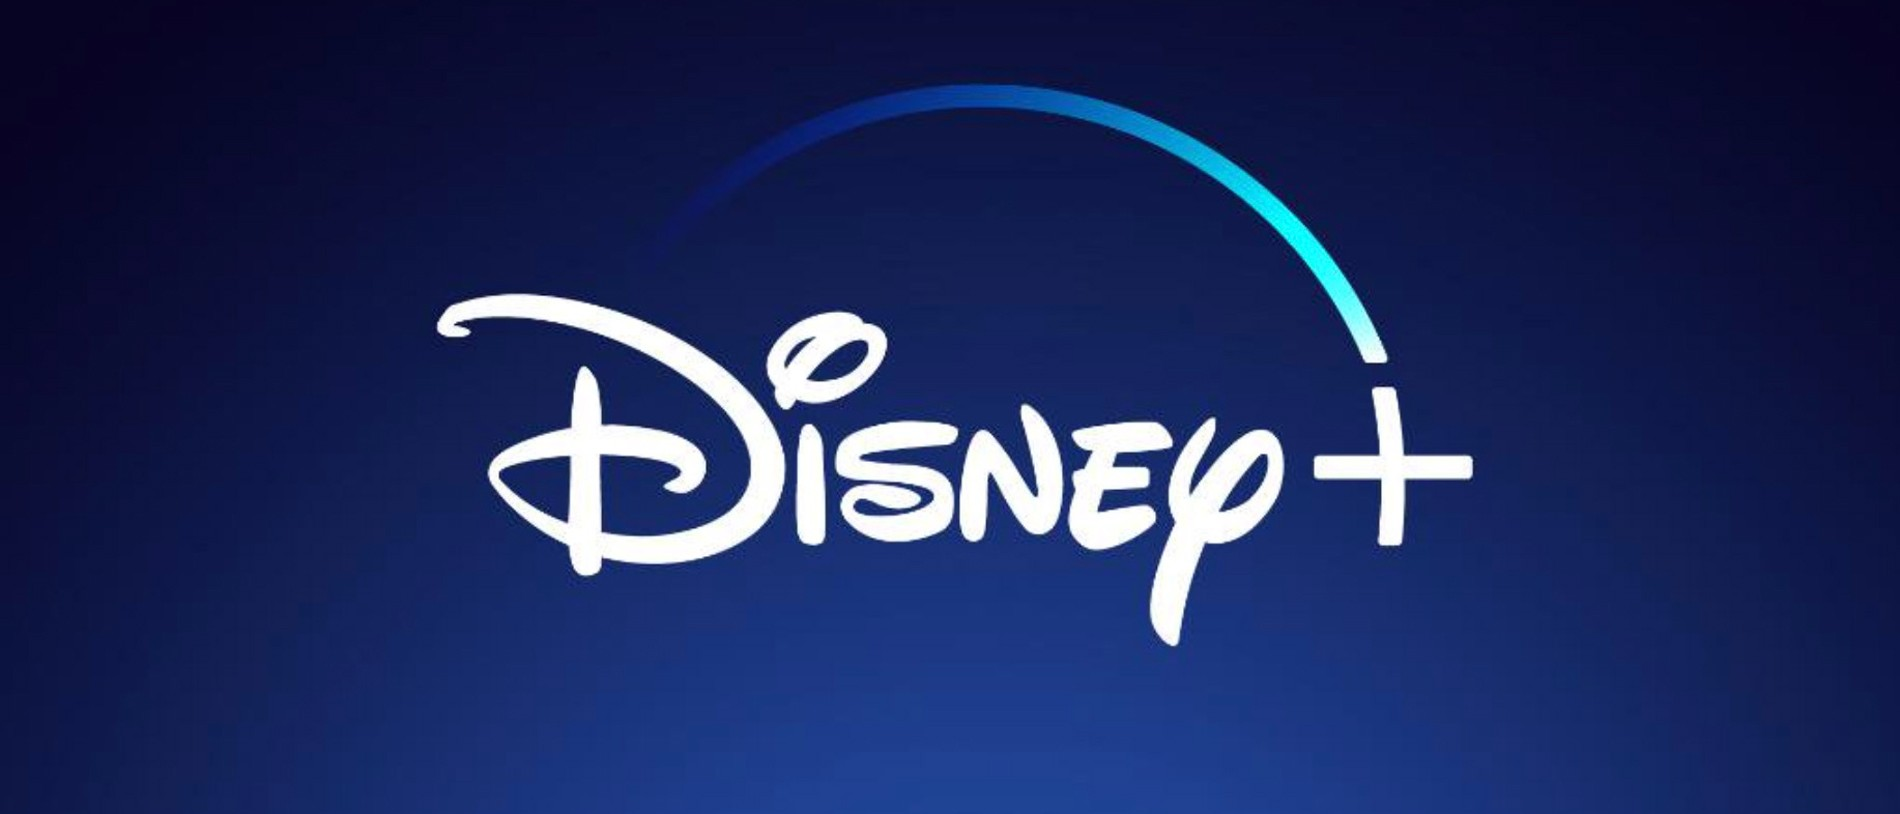 Disney Plus has been released in the UK today